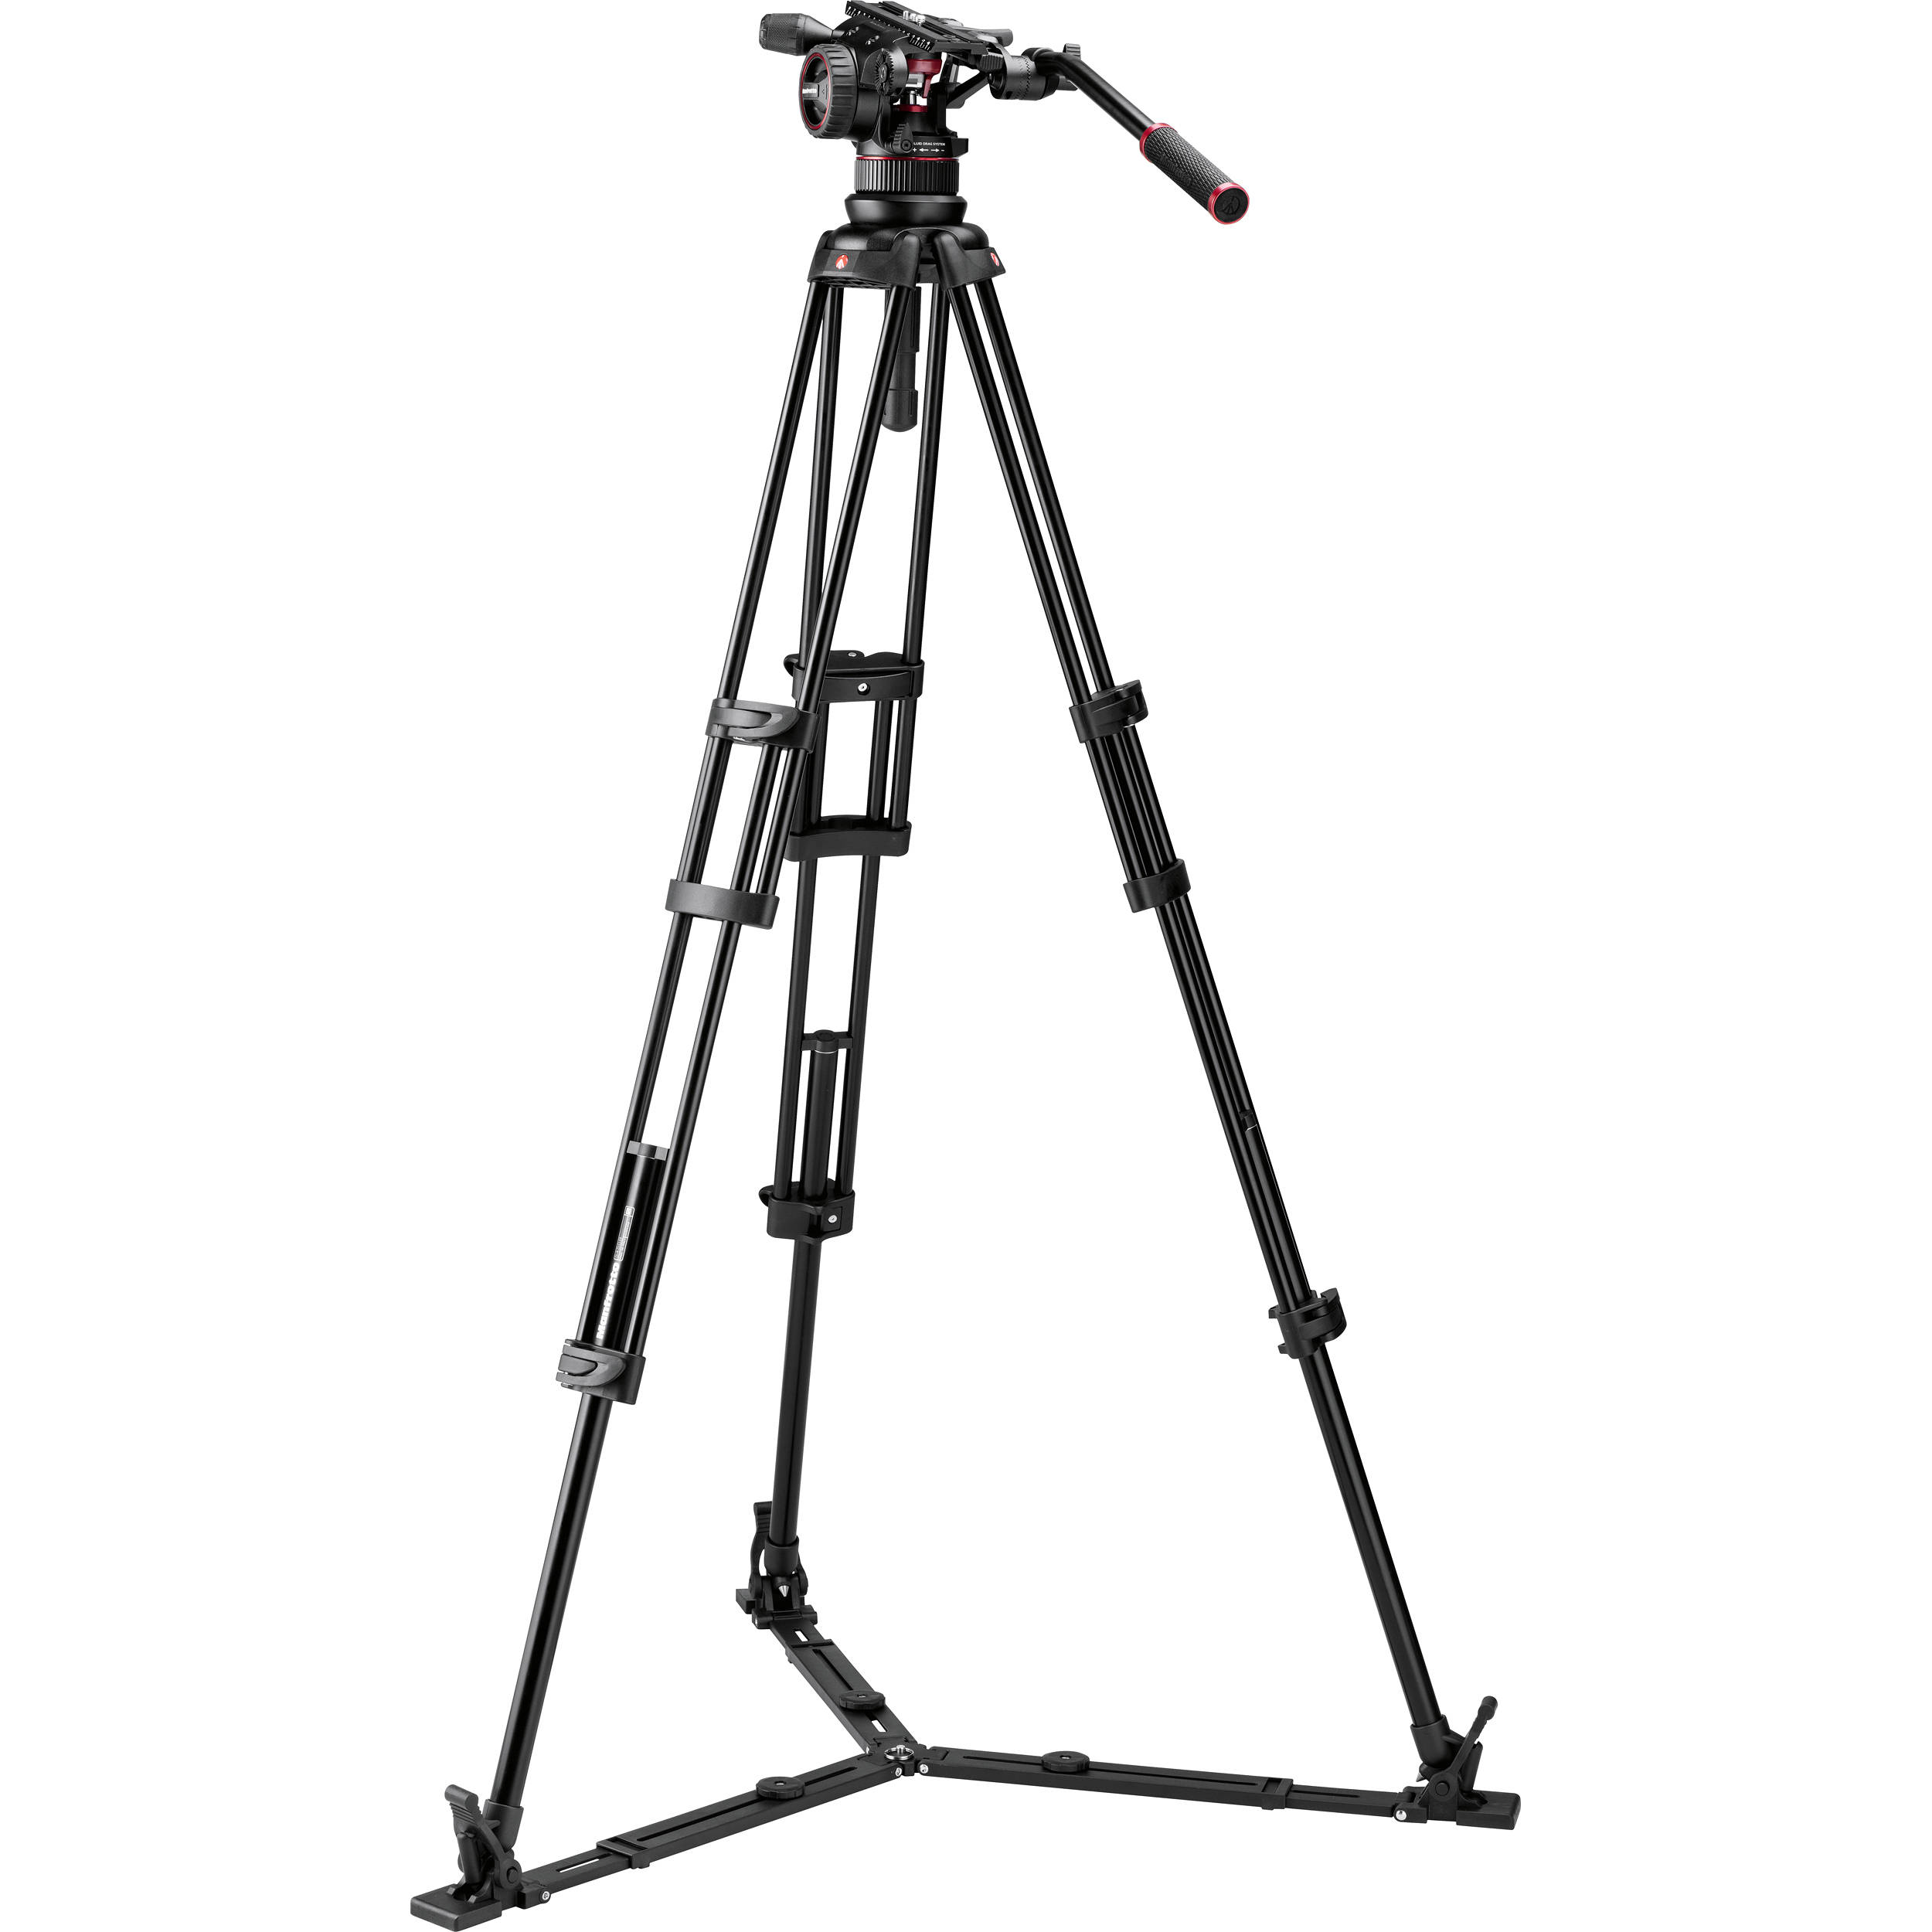 Manfrotto Tripods (Heads and Legs ) Manfrotto 545 legs and 509HD head. - Image #1